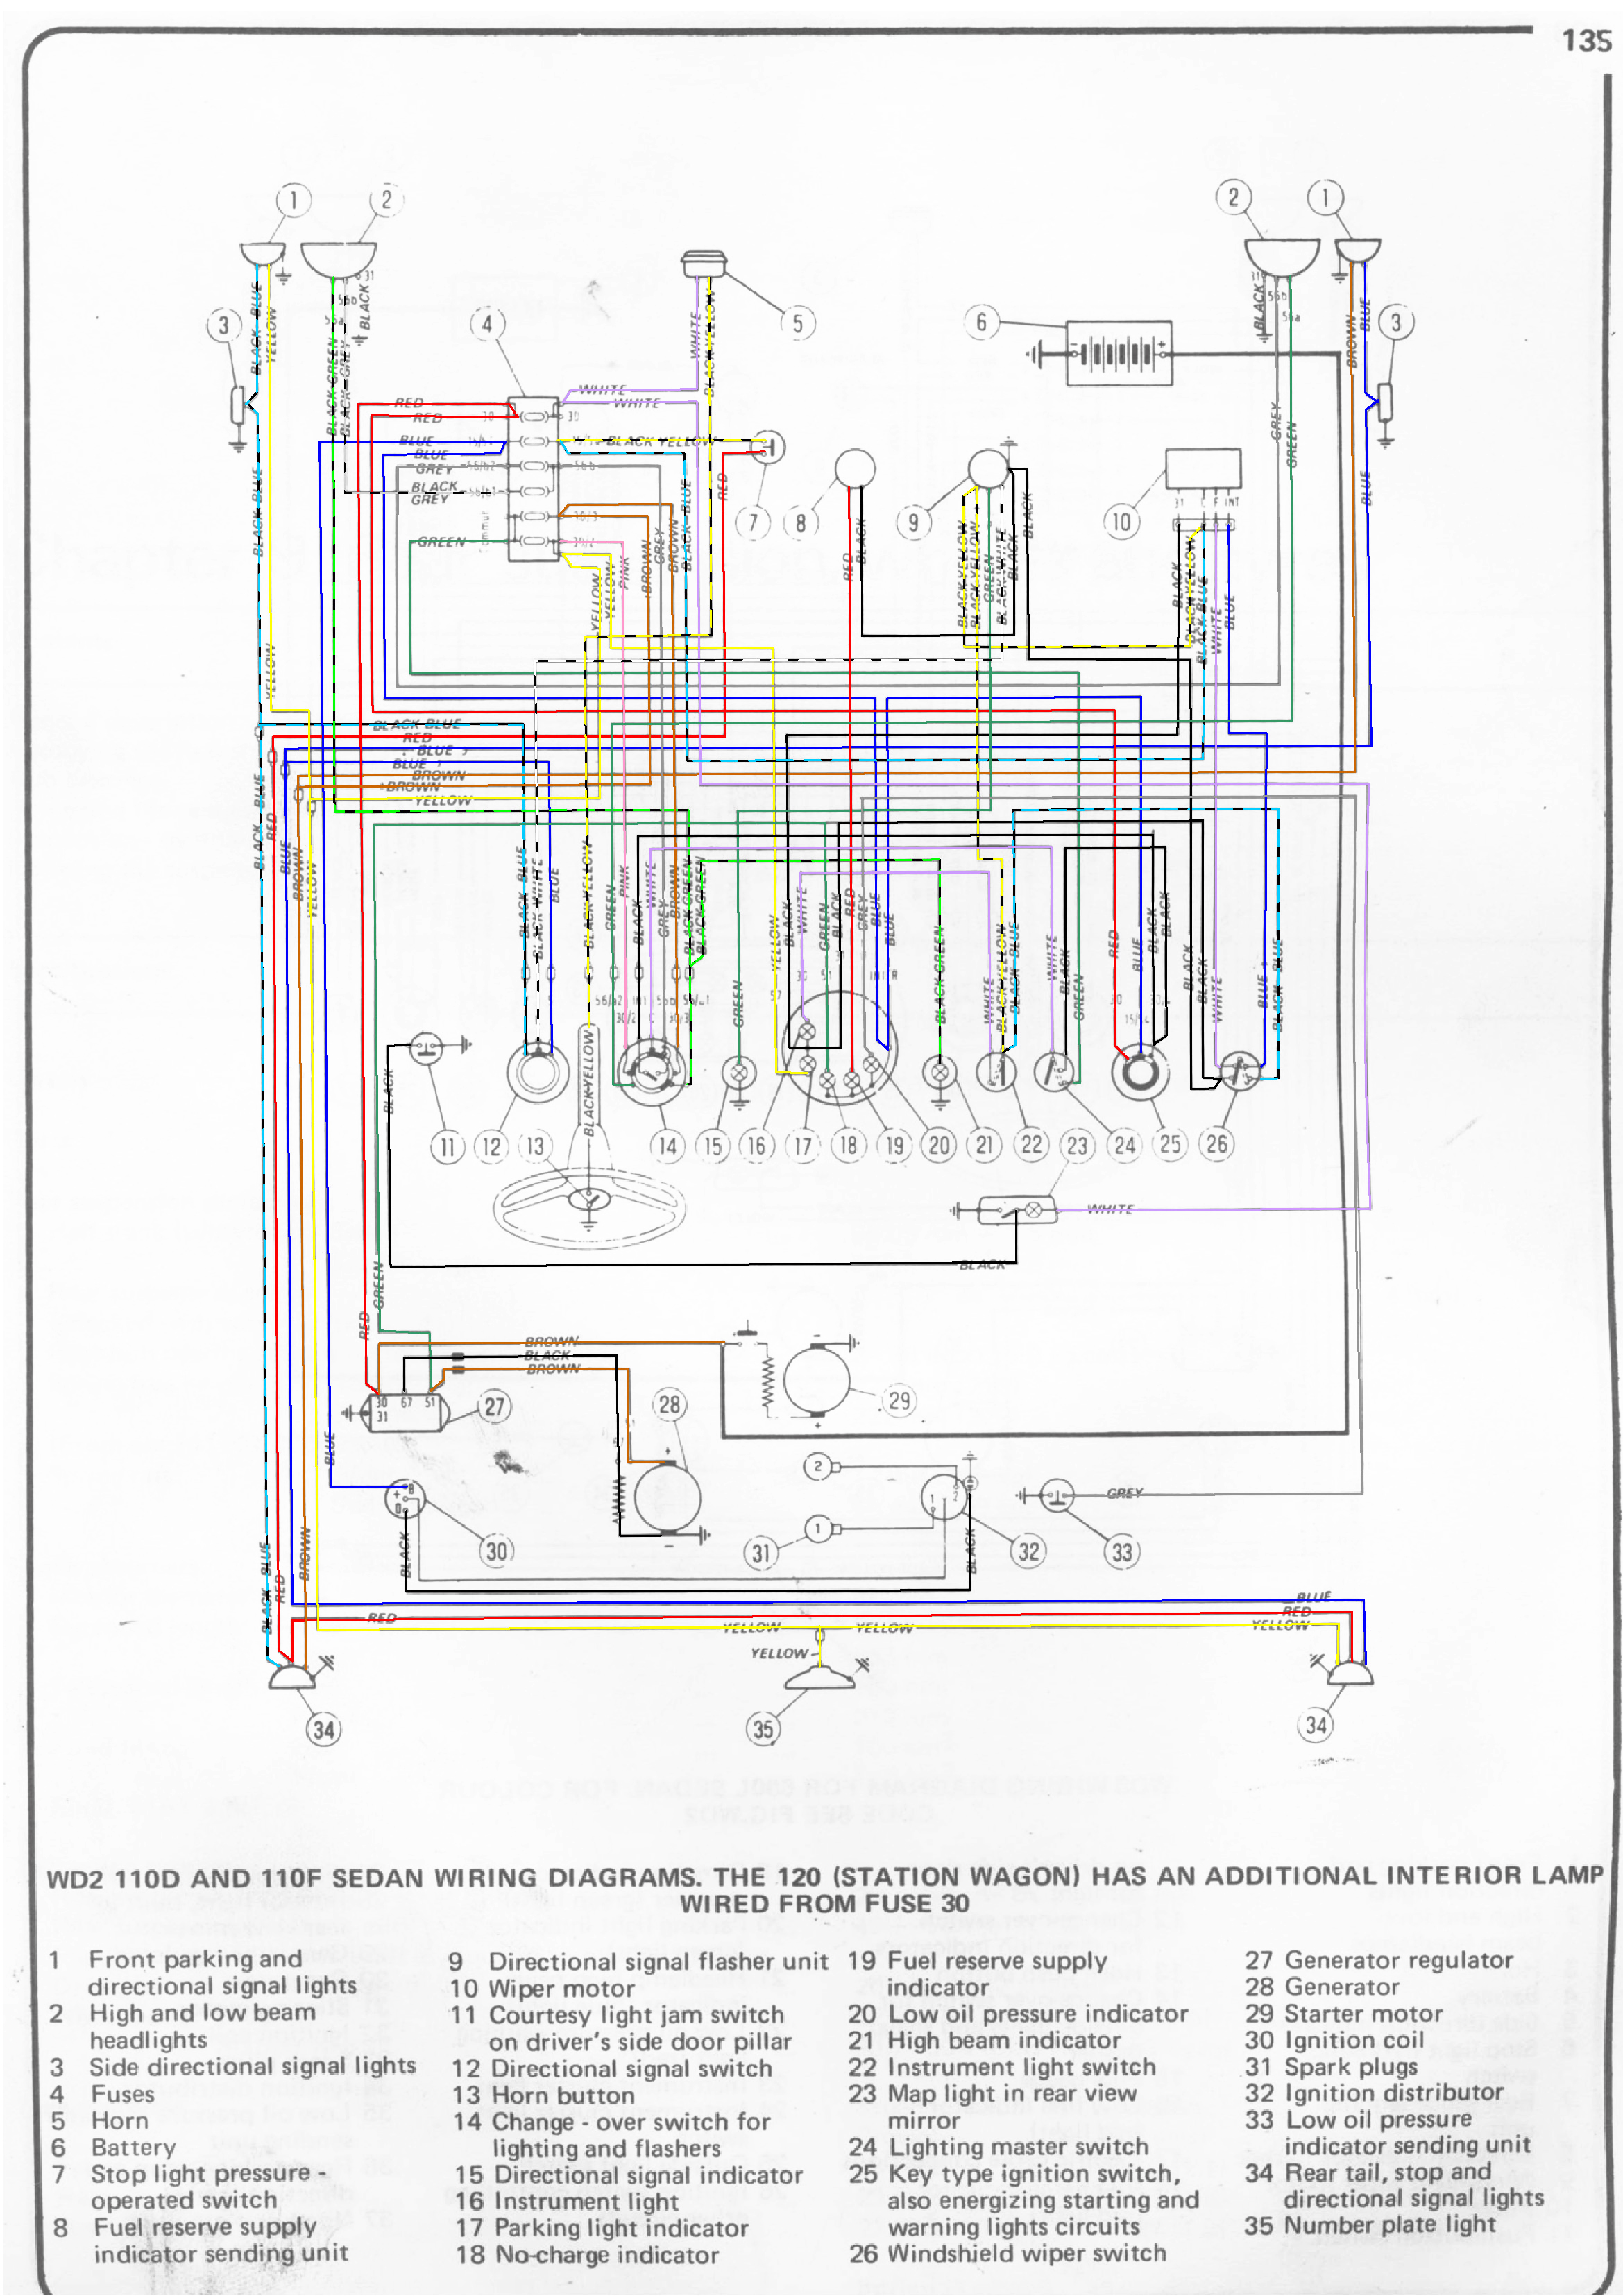 Fiat+500+Wiring+Diagram?t\=1508407624 fiat 500 wiring diagram chevrolet volt wiring diagram \u2022 free lh33wp003a wiring diagram at alyssarenee.co